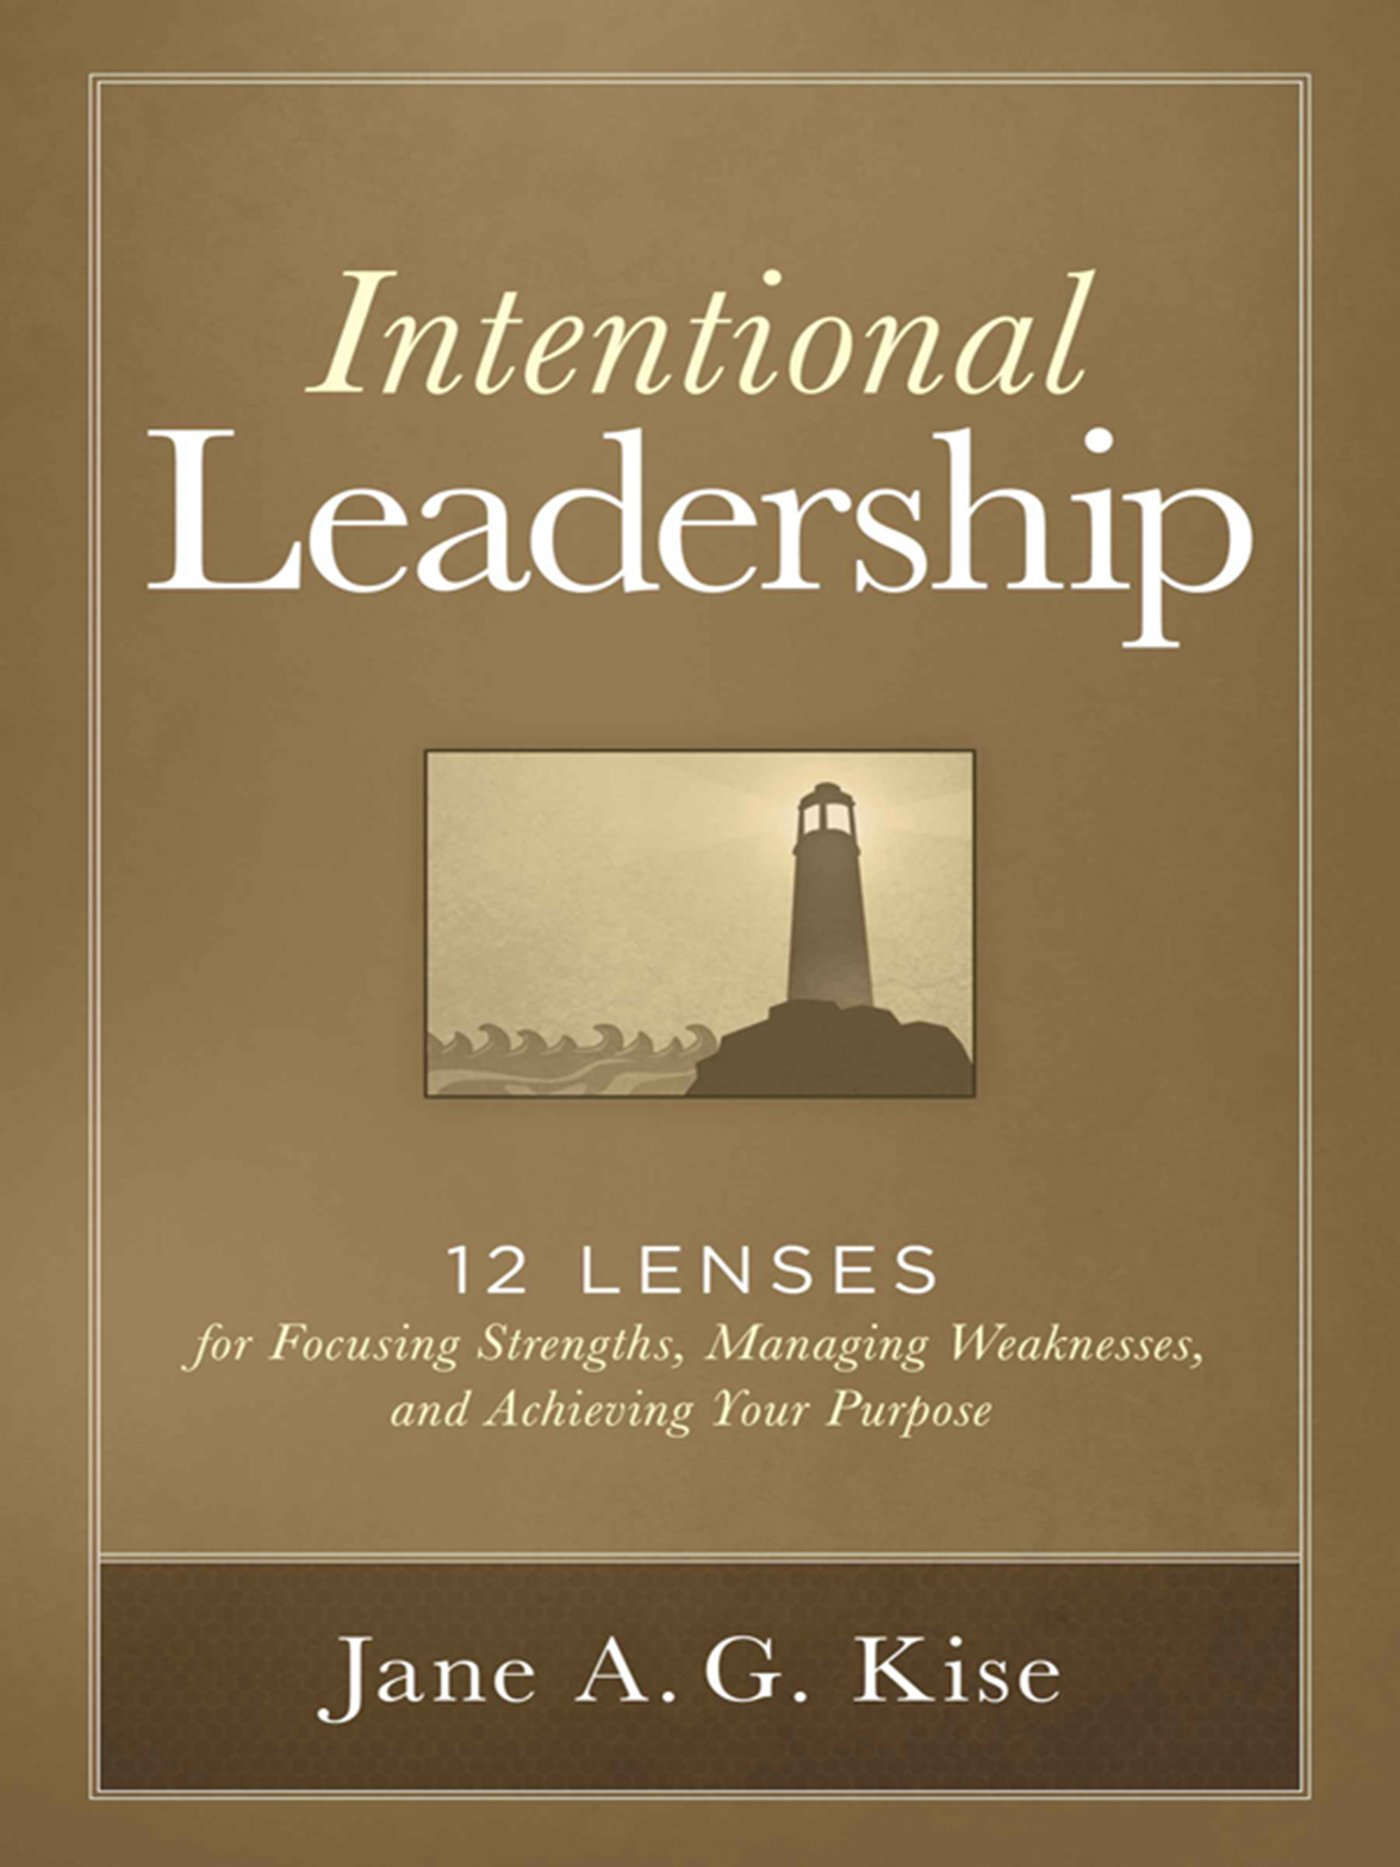 intentional leadership 12 lenses for focusing strengths managing intentional leadership 12 lenses for focusing strengths managing weaknesses and achieving your purpose jane a g kise 9781621534266 amazon com books